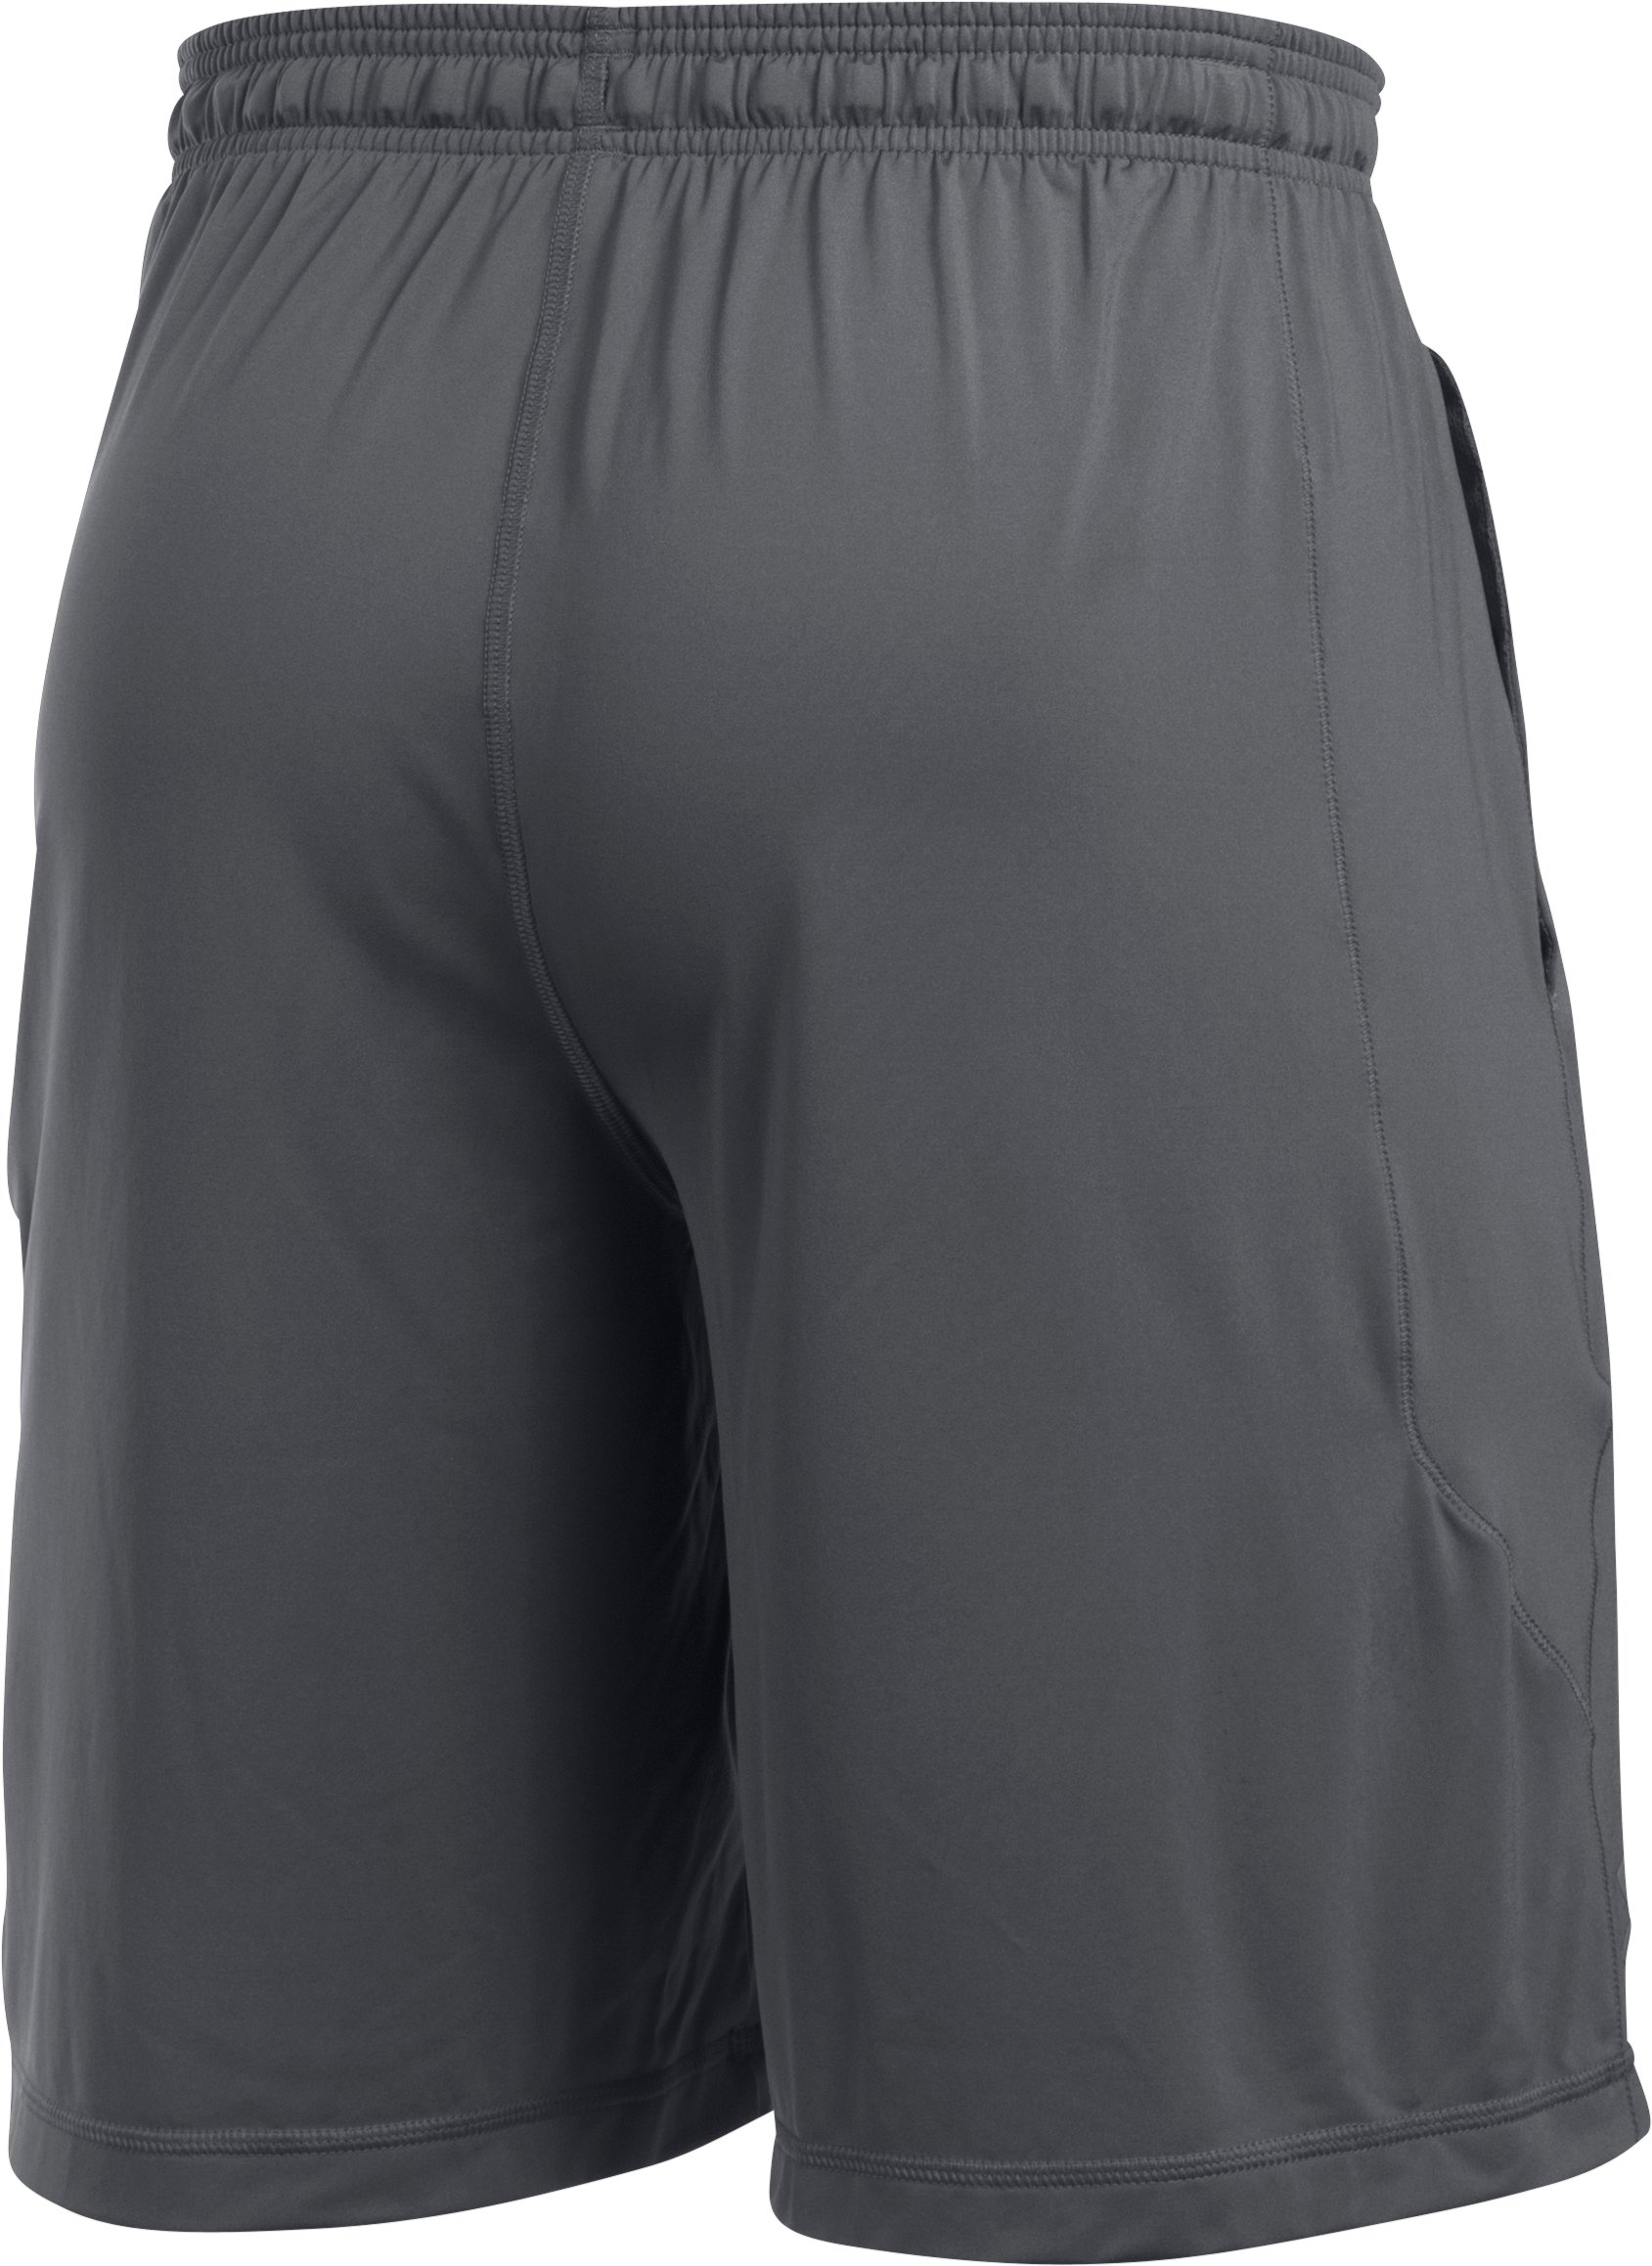 Men's Boston Red Sox Raid Shorts, Graphite,